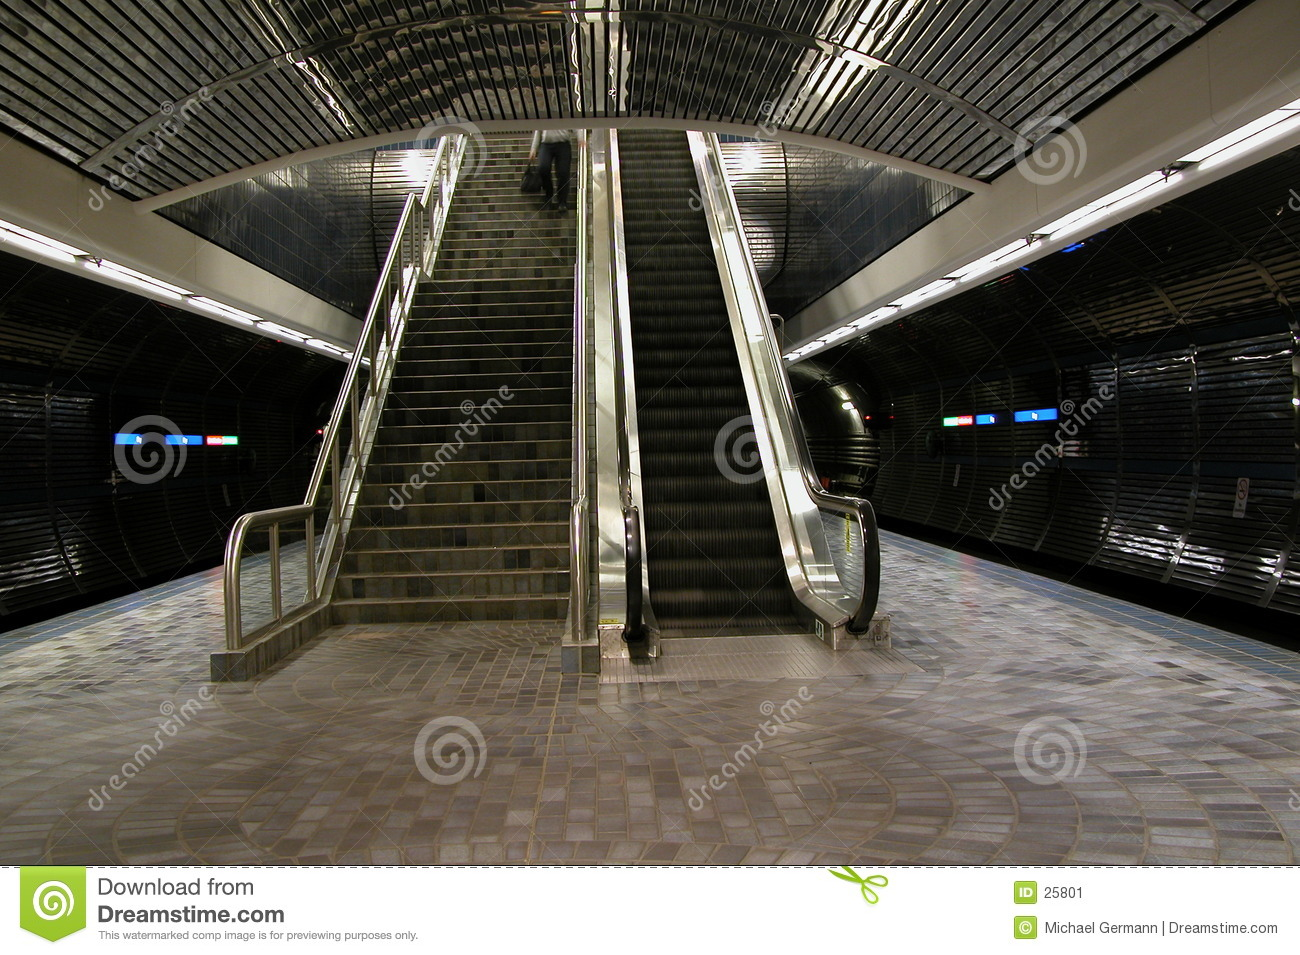 Escaliers et escalator